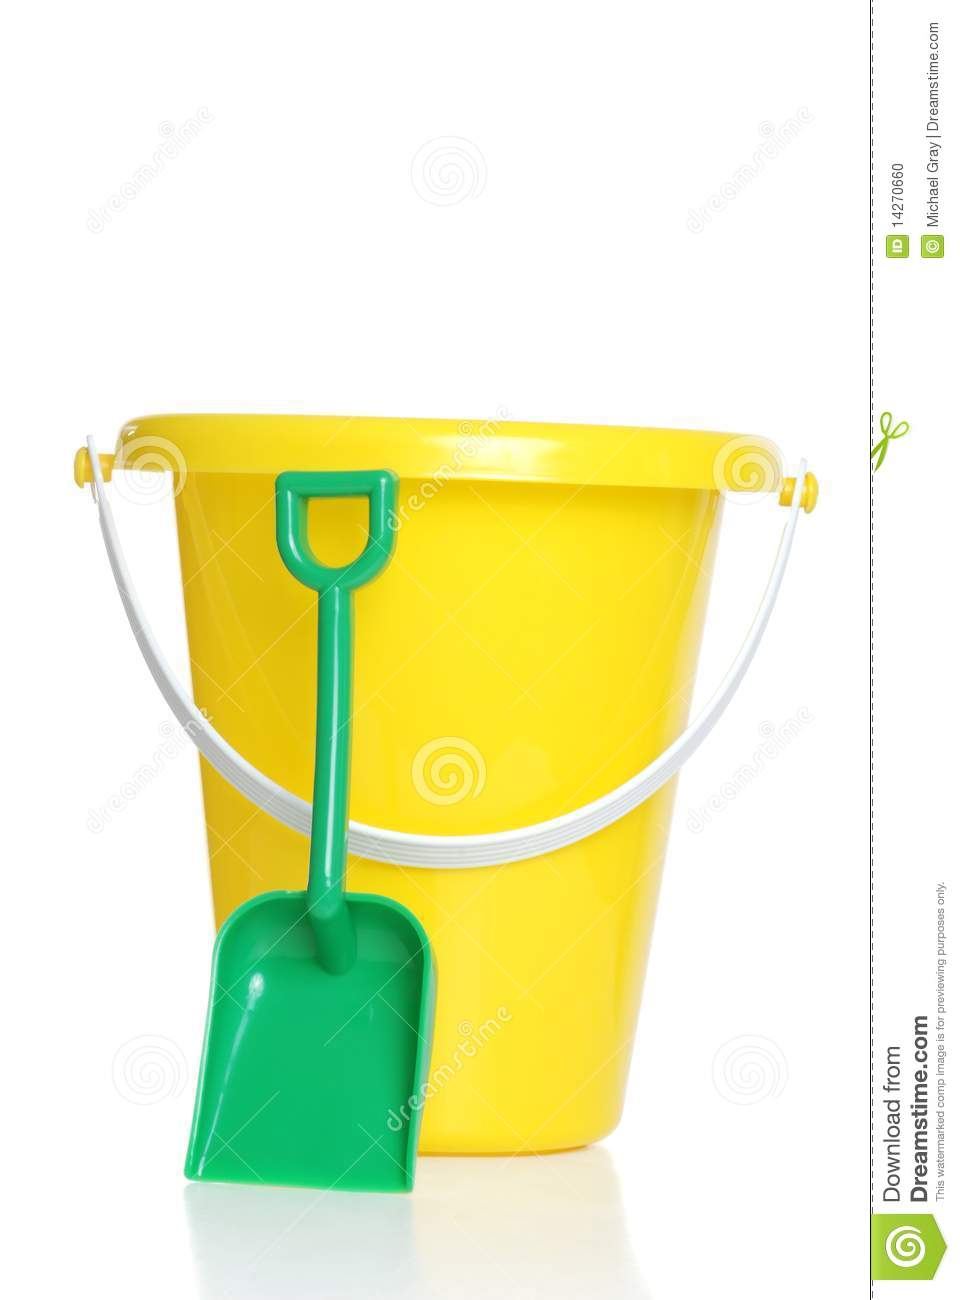 Childs pail and shovel